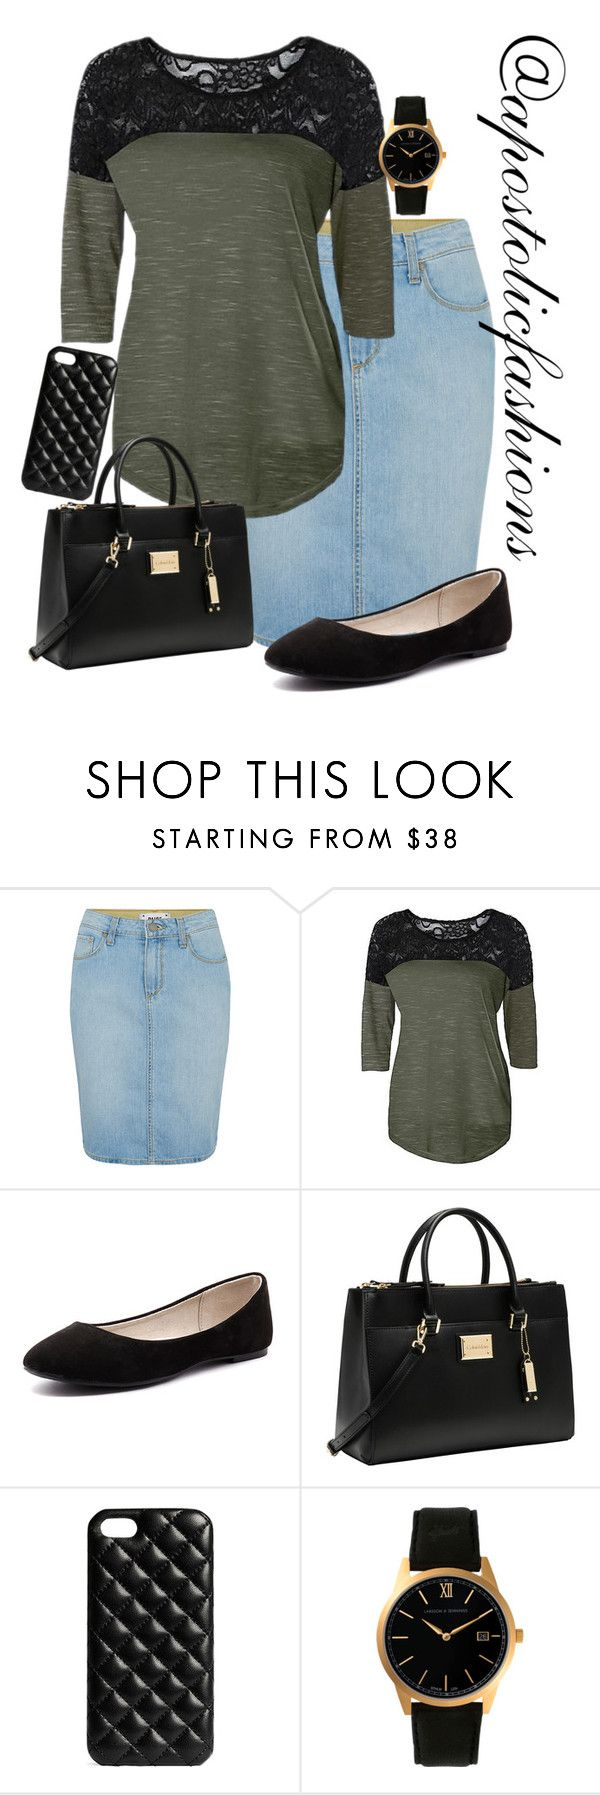 """""""Apostolic Fashions #1466"""" by apostolicfashions on Polyvore featuring Paige Denim, Verali, Calvin Klein, The Case Factory and Larsson & Jennings"""